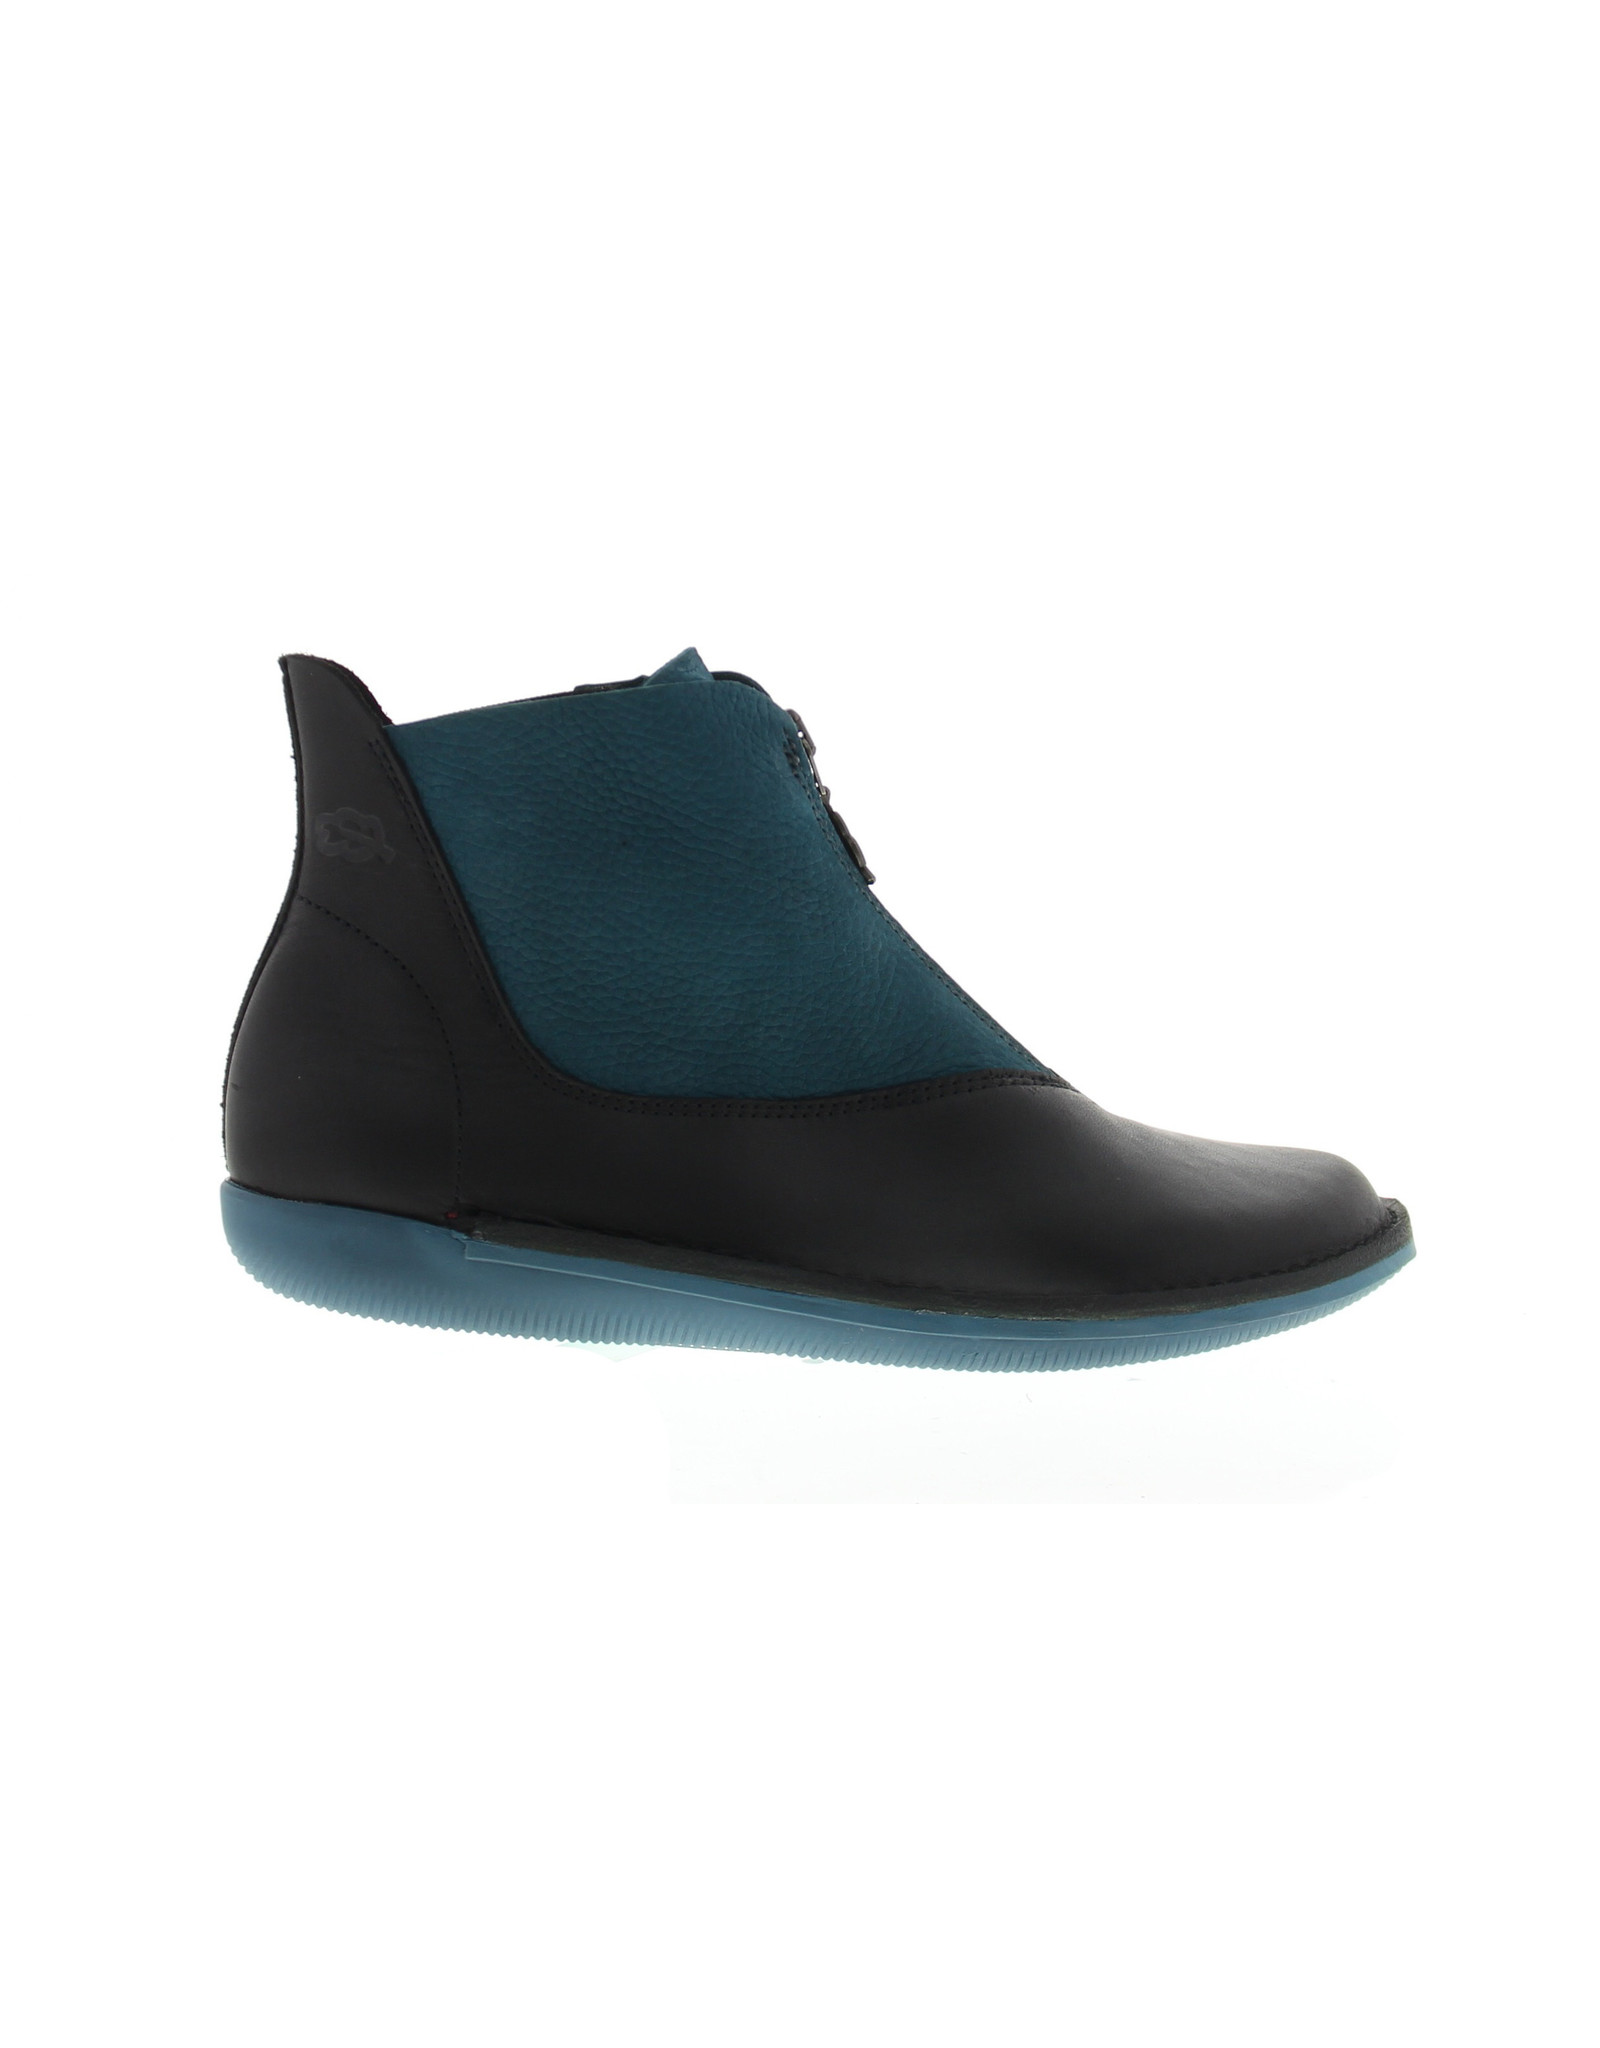 Loints Natural 68089 977/540 Black/Turquoise